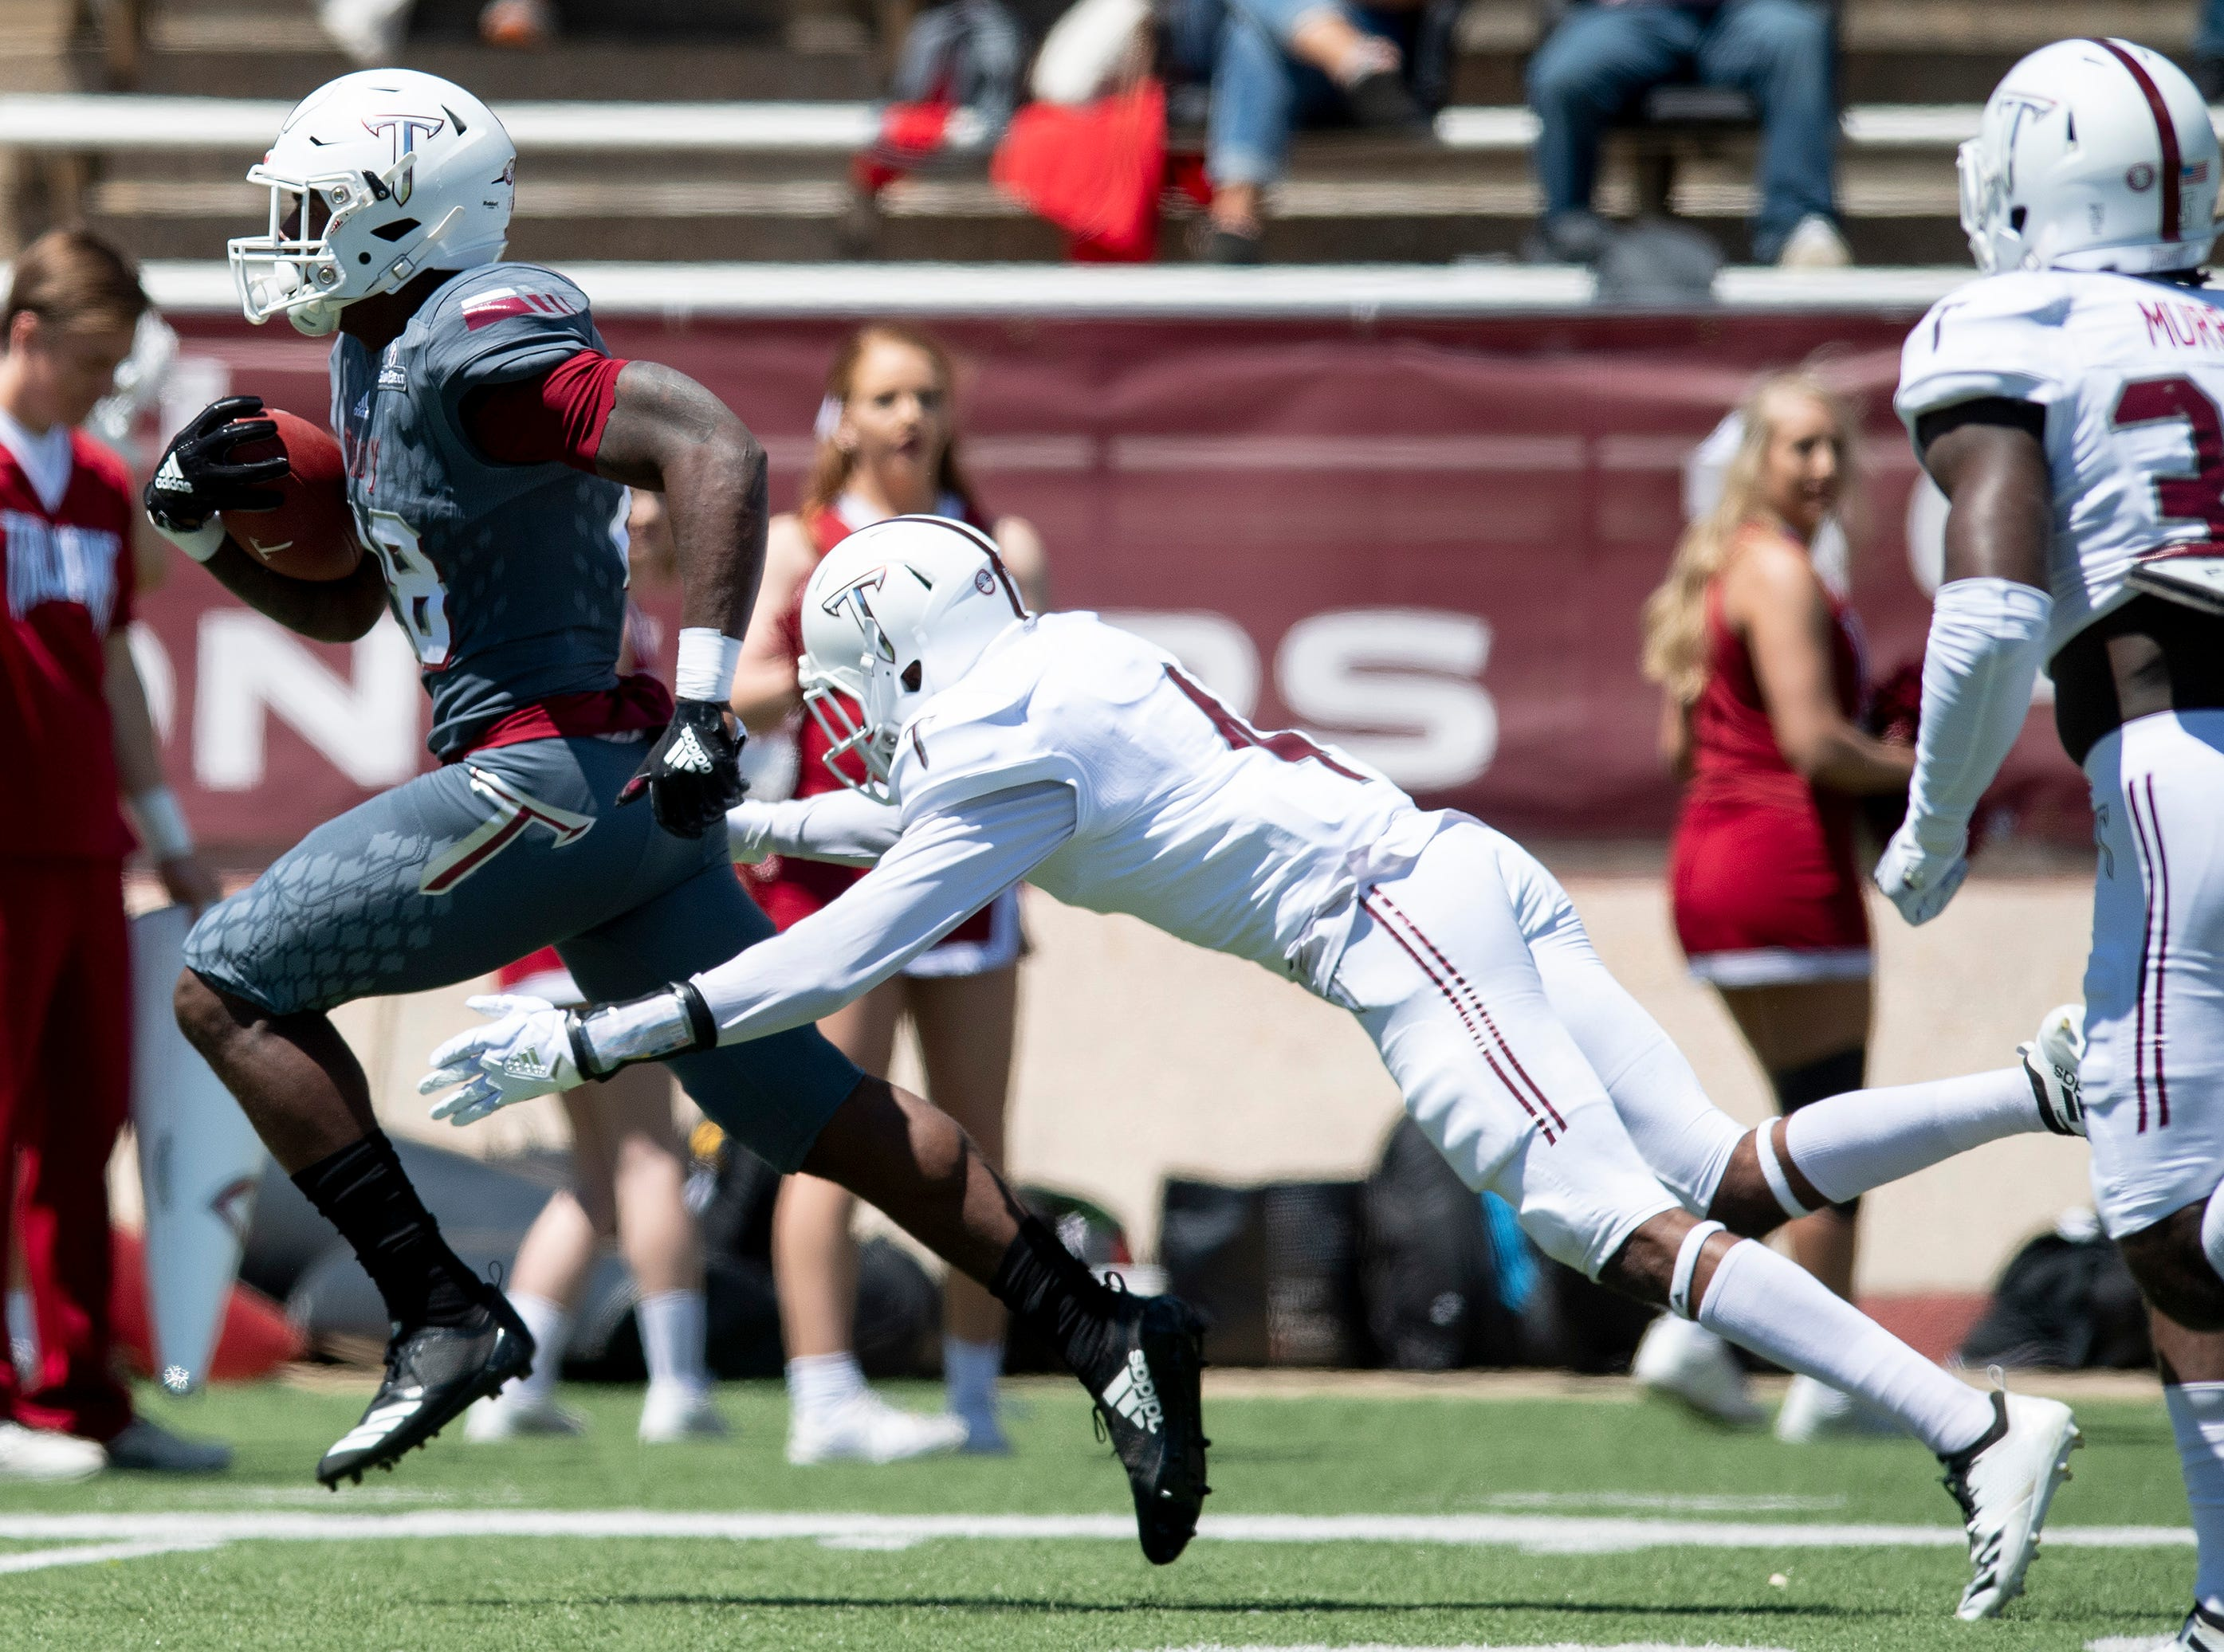 Troy running back Charles Strong (28) gets by safety Koby Perry (4) for a touchdown during the Troy University T-Day spring scrimmage game in Troy, Ala., on Saturday April 20, 2019.